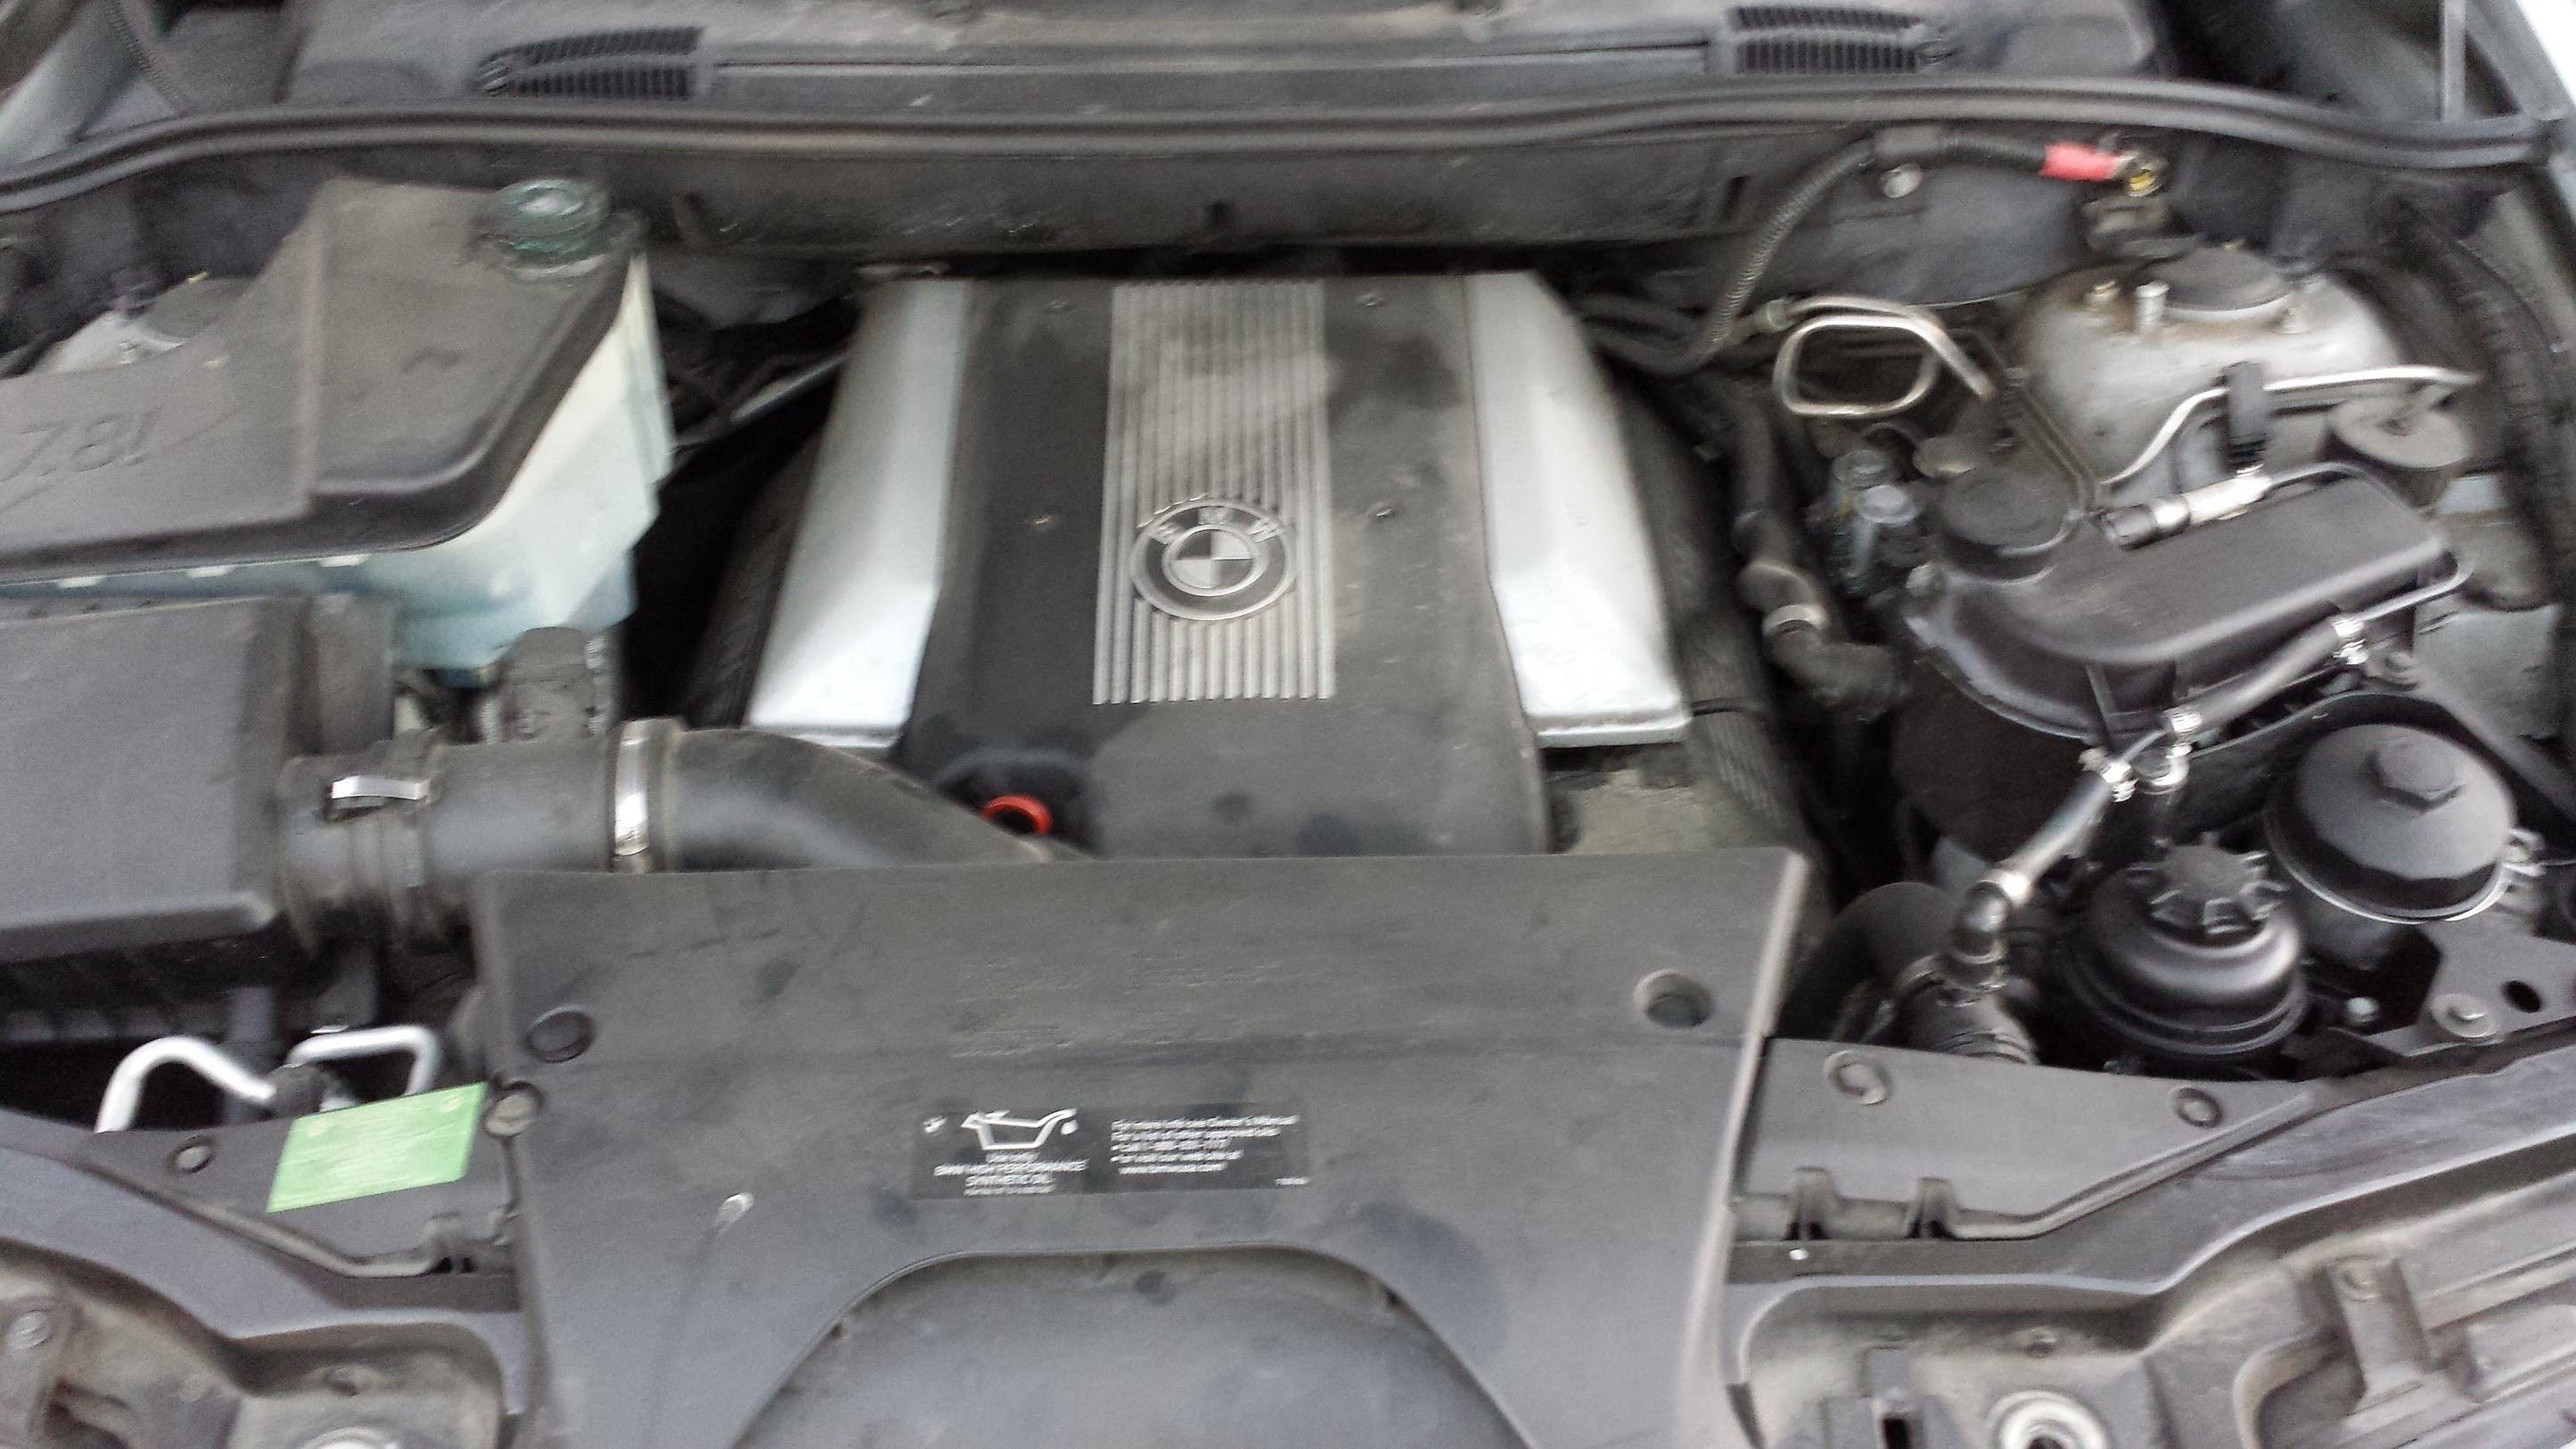 Bmw 1 Series Engine Diagram Bmw E53 X5 4 4 Vanos Engine Diagram Of Bmw 1 Series Engine Diagram